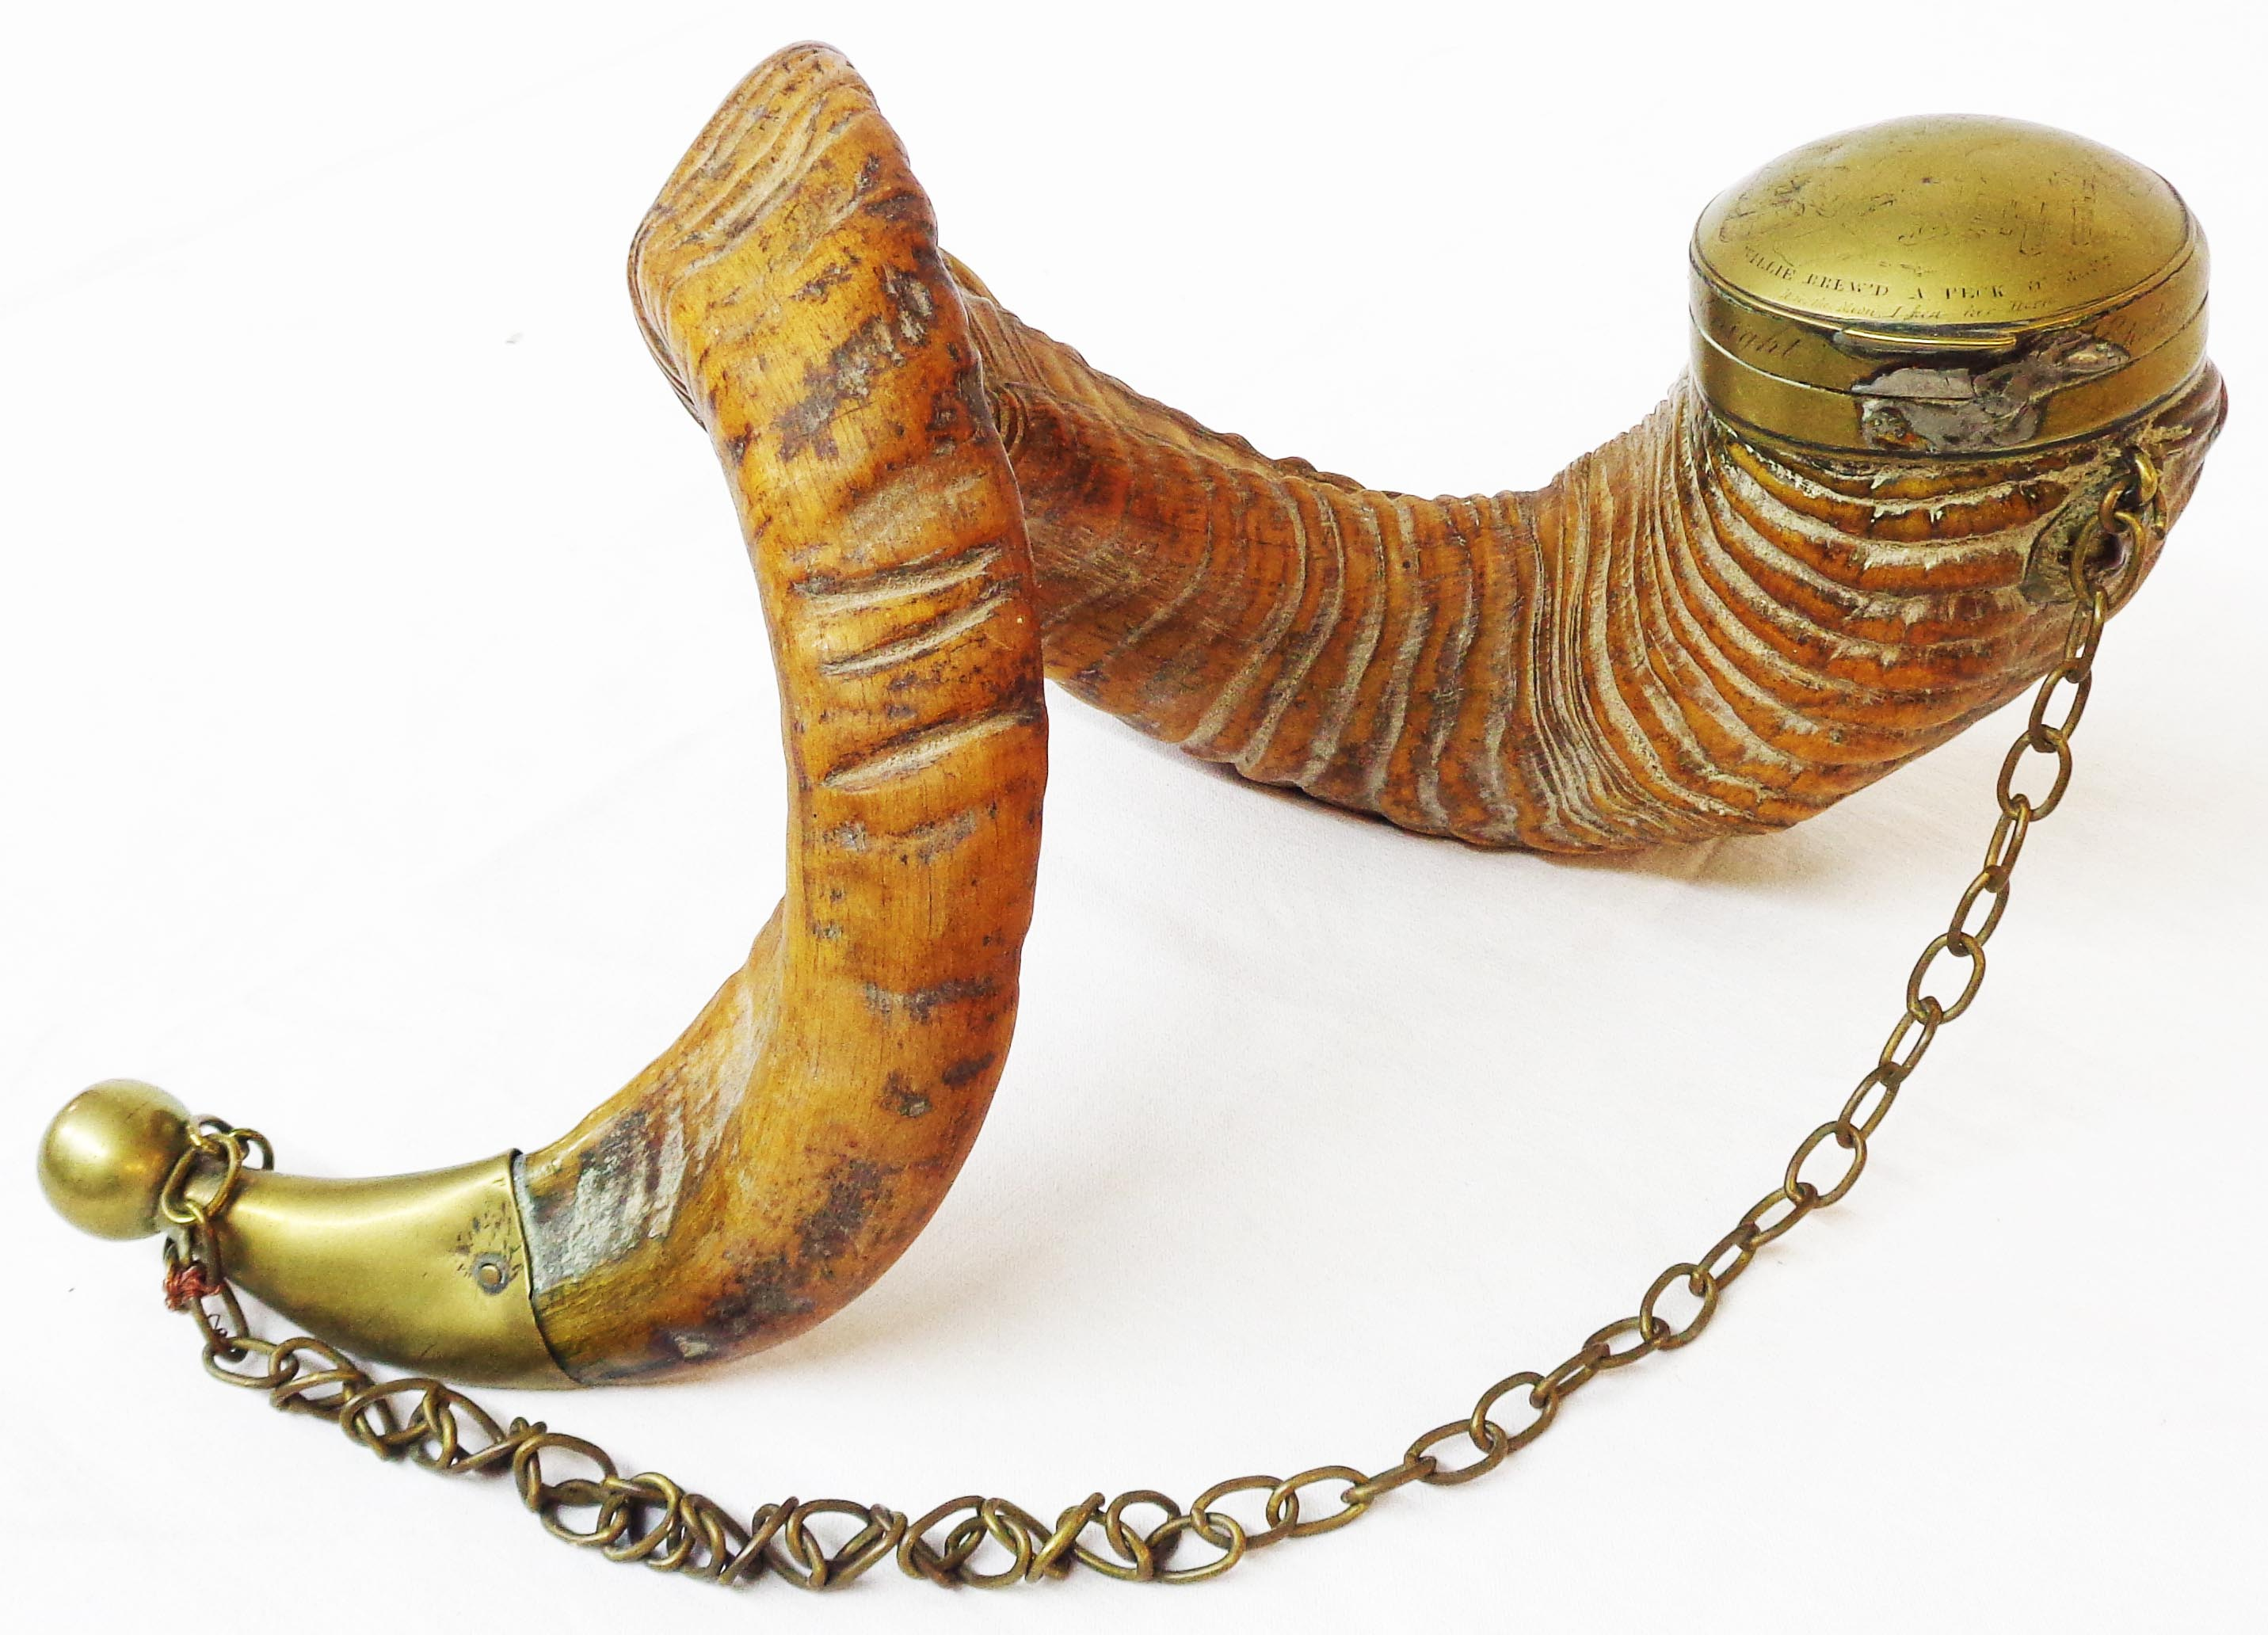 An early 19th Century Scottish snuff mull formed from a large ram's horn with brass mounts and